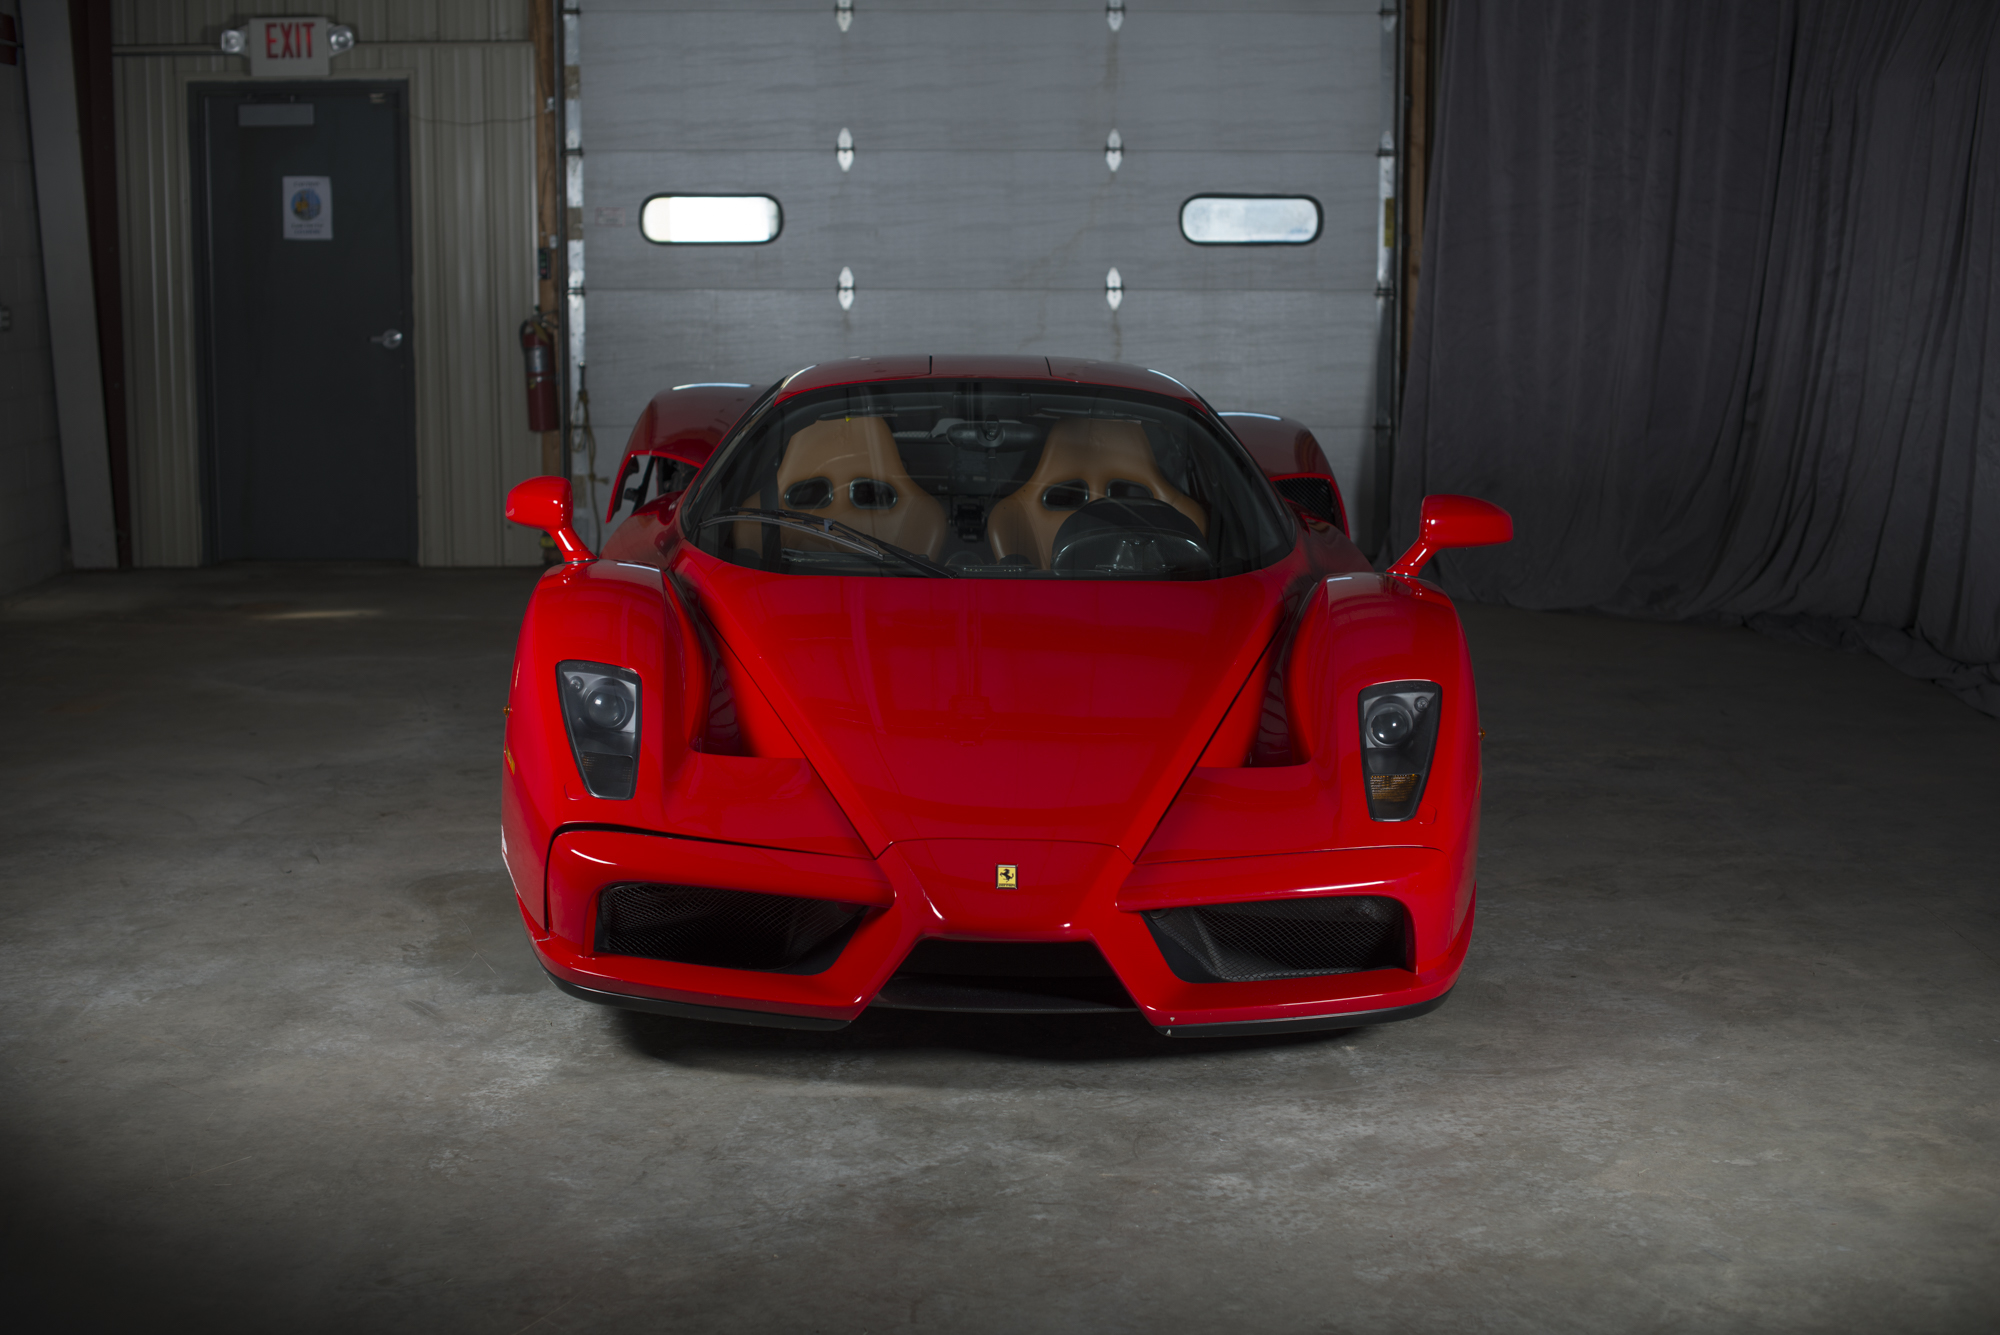 Ferrari Enzo crashed exotic